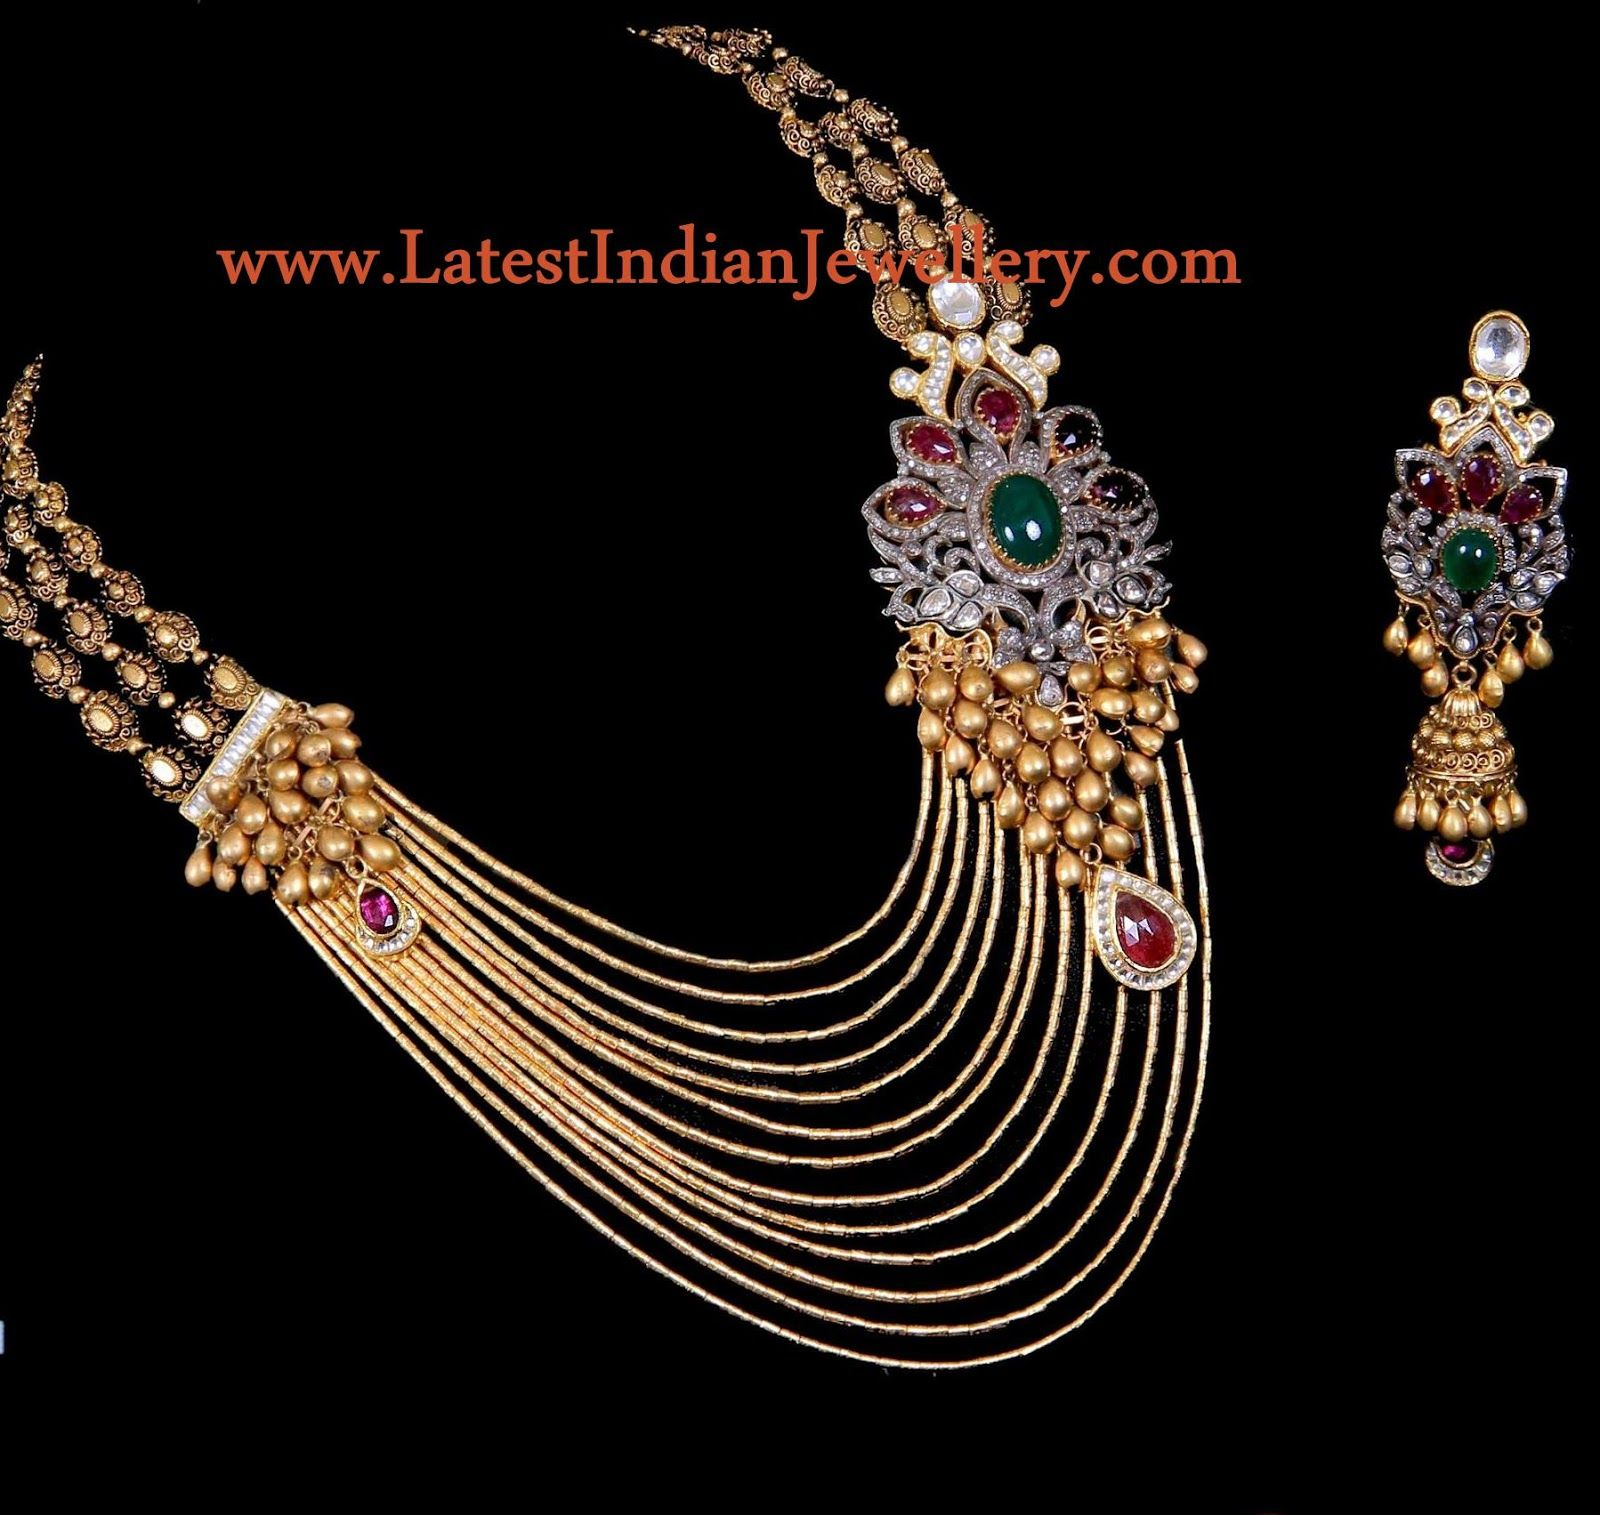 Gold rani haar pictures to pin on pinterest - Designer Multi String Gold Jadau Necklace Latest Indian Jewellery Designs